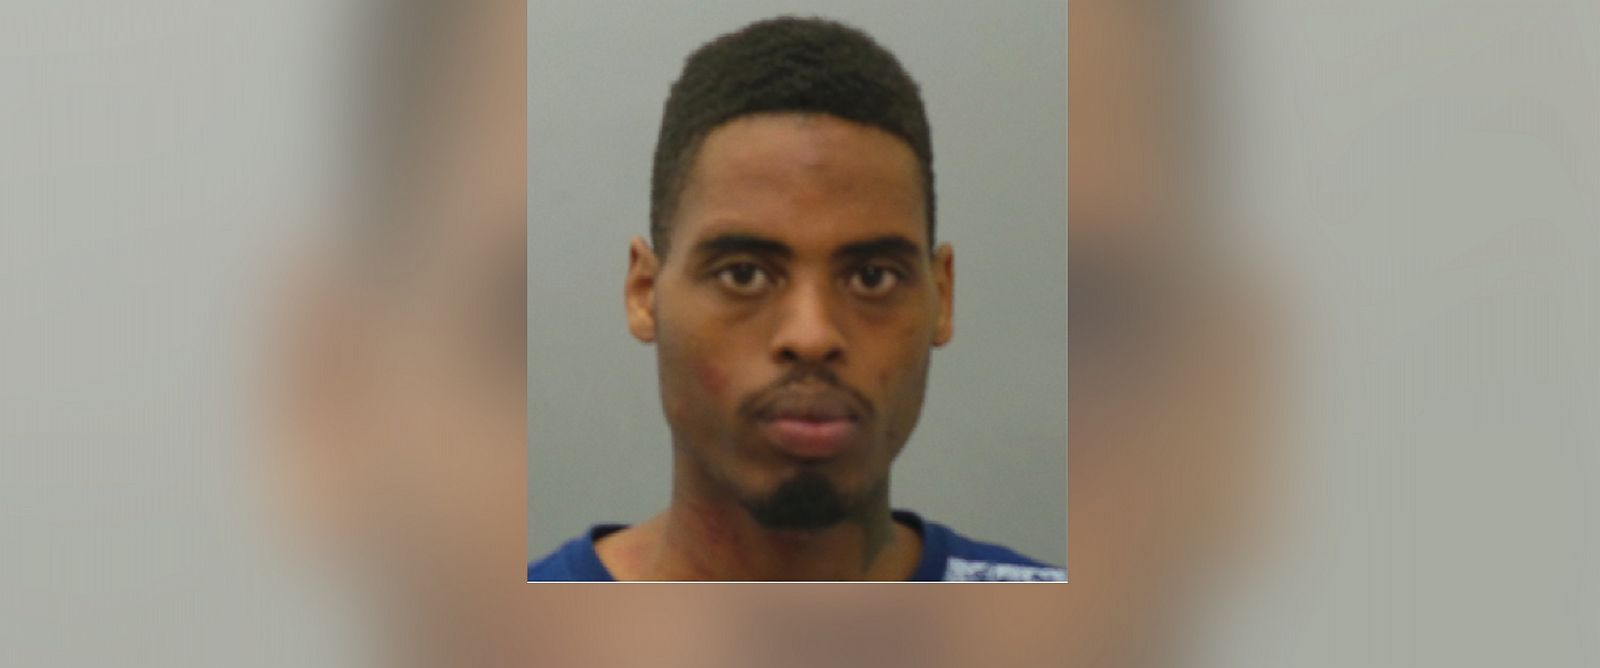 PHOTO: Jeffrey Williams, 20, was arrested Saturday night, March 14, 2015 in connection with a shooting in Ferguson.